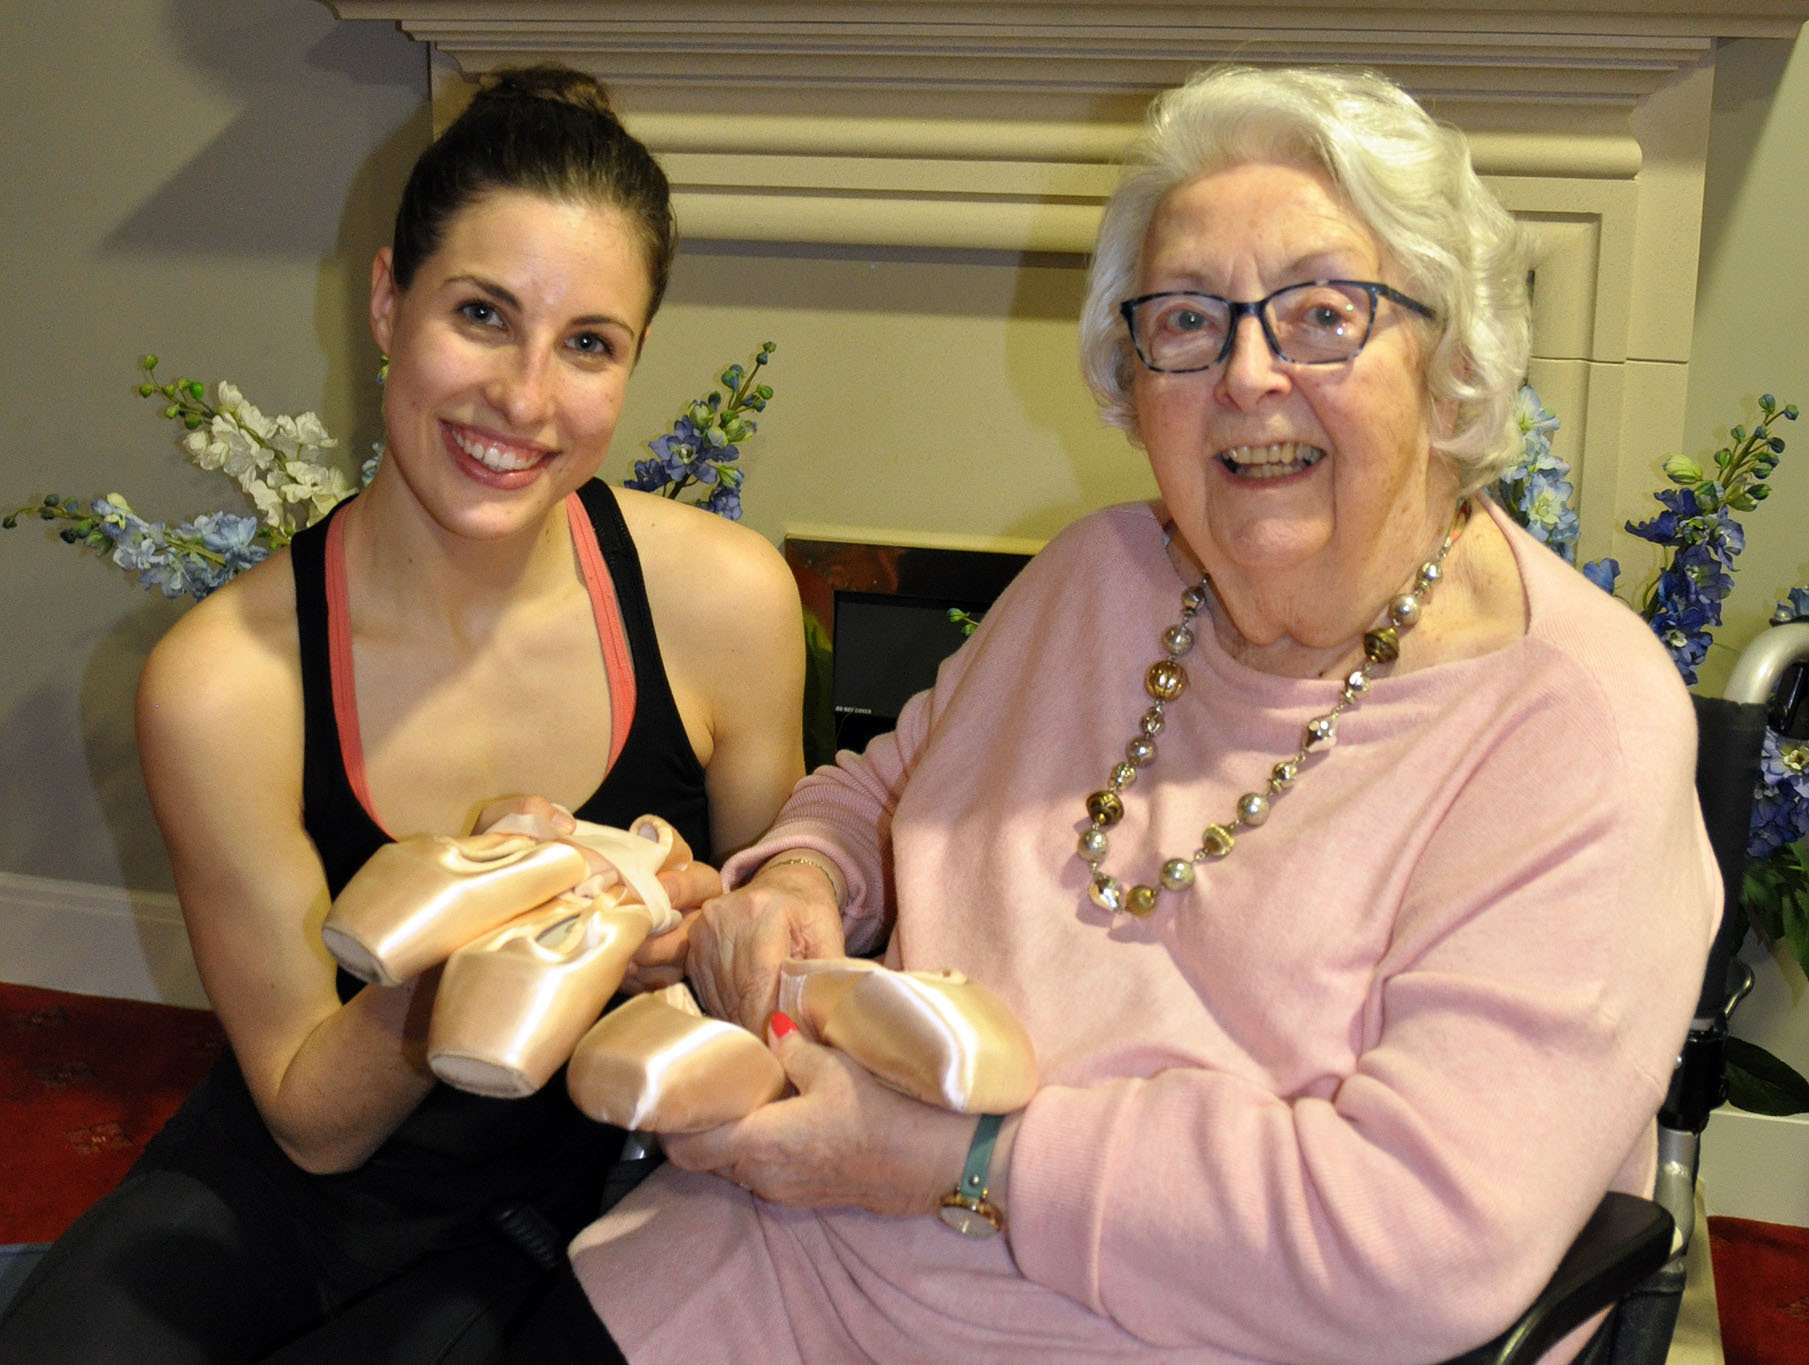 How a young dancer transported a once famous ballet star back to her heyday